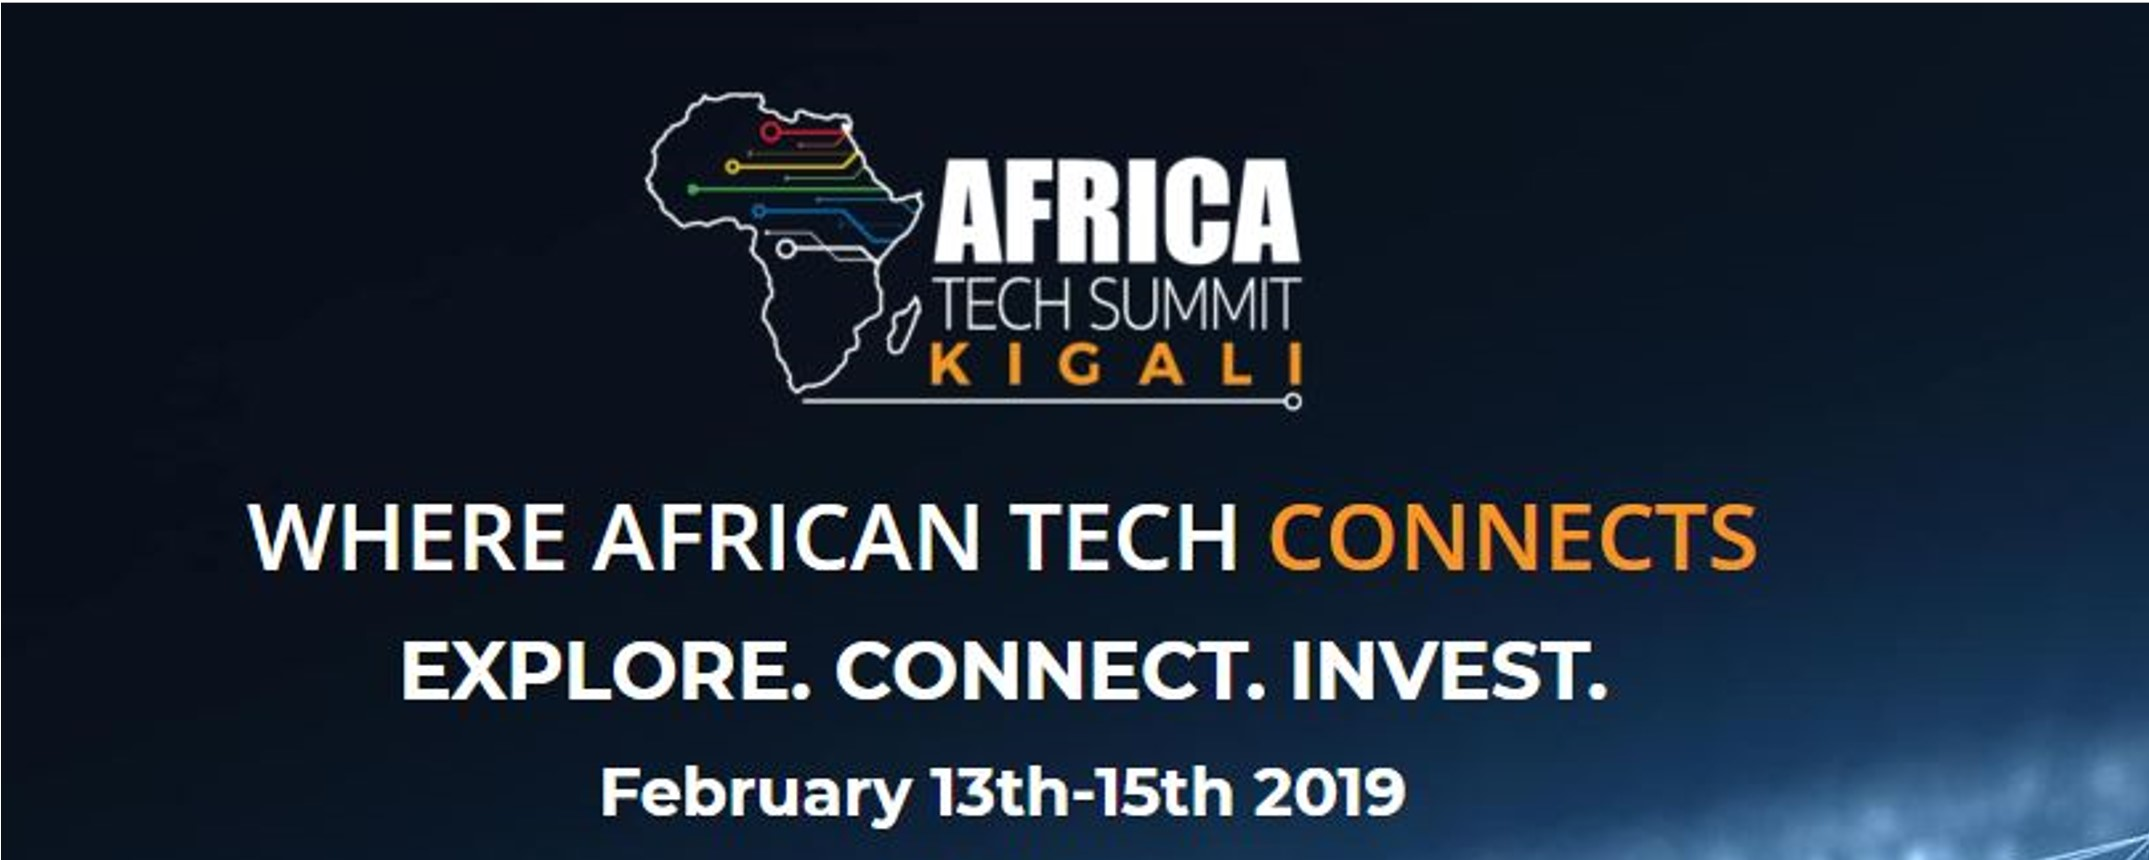 Africa Technology Summit - Africa Tech Summit Kigali 2019 Movemeback African event cover image